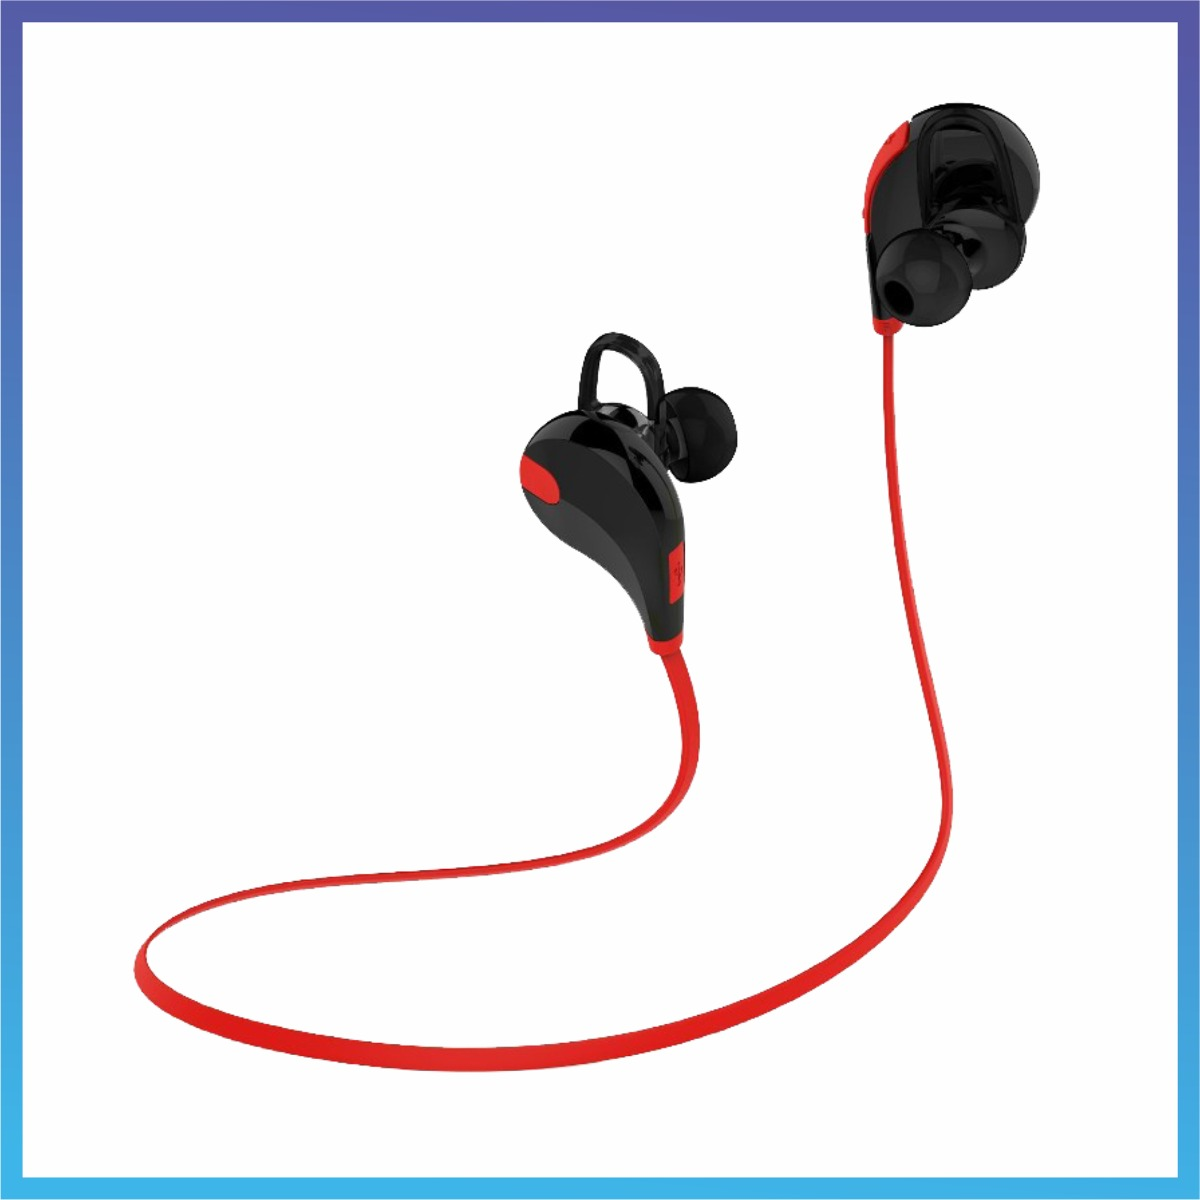 Manos Libres Bluetooth Amazon Audifonos Bluetooth 4 1 Manos Libres 2 Dispositivos A La